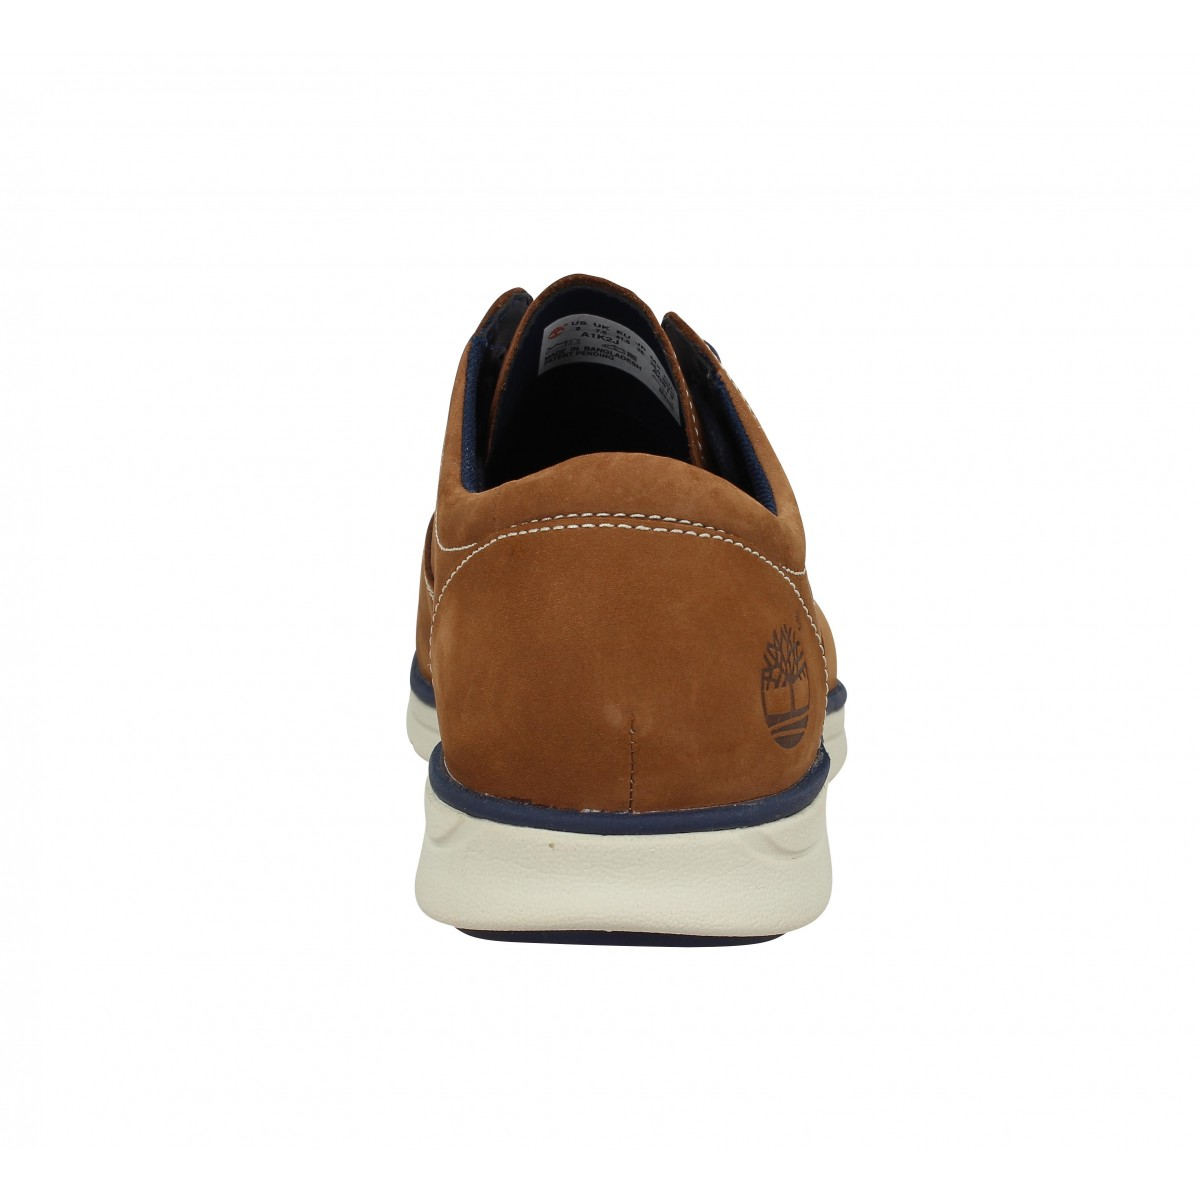 77c08f31641 Chaussures Marron Fanny Oxford Homme Bradstreet Timberland nqwY6XTX ...